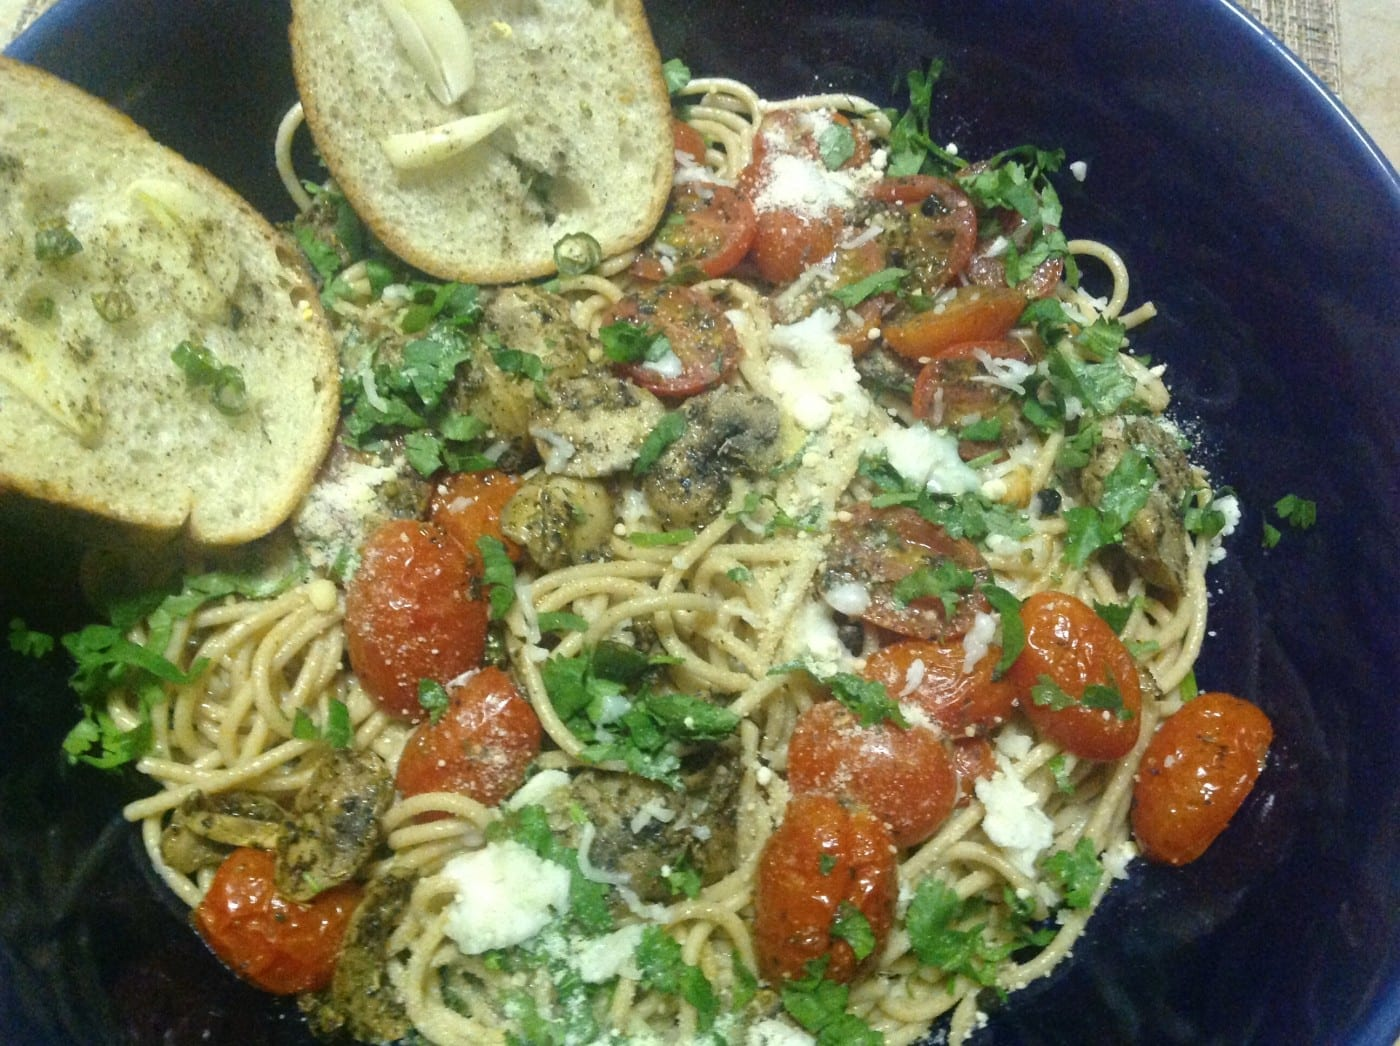 Closeup view of a blue bowl with spaghetti, roasted tomatoes and garlic toast on the side